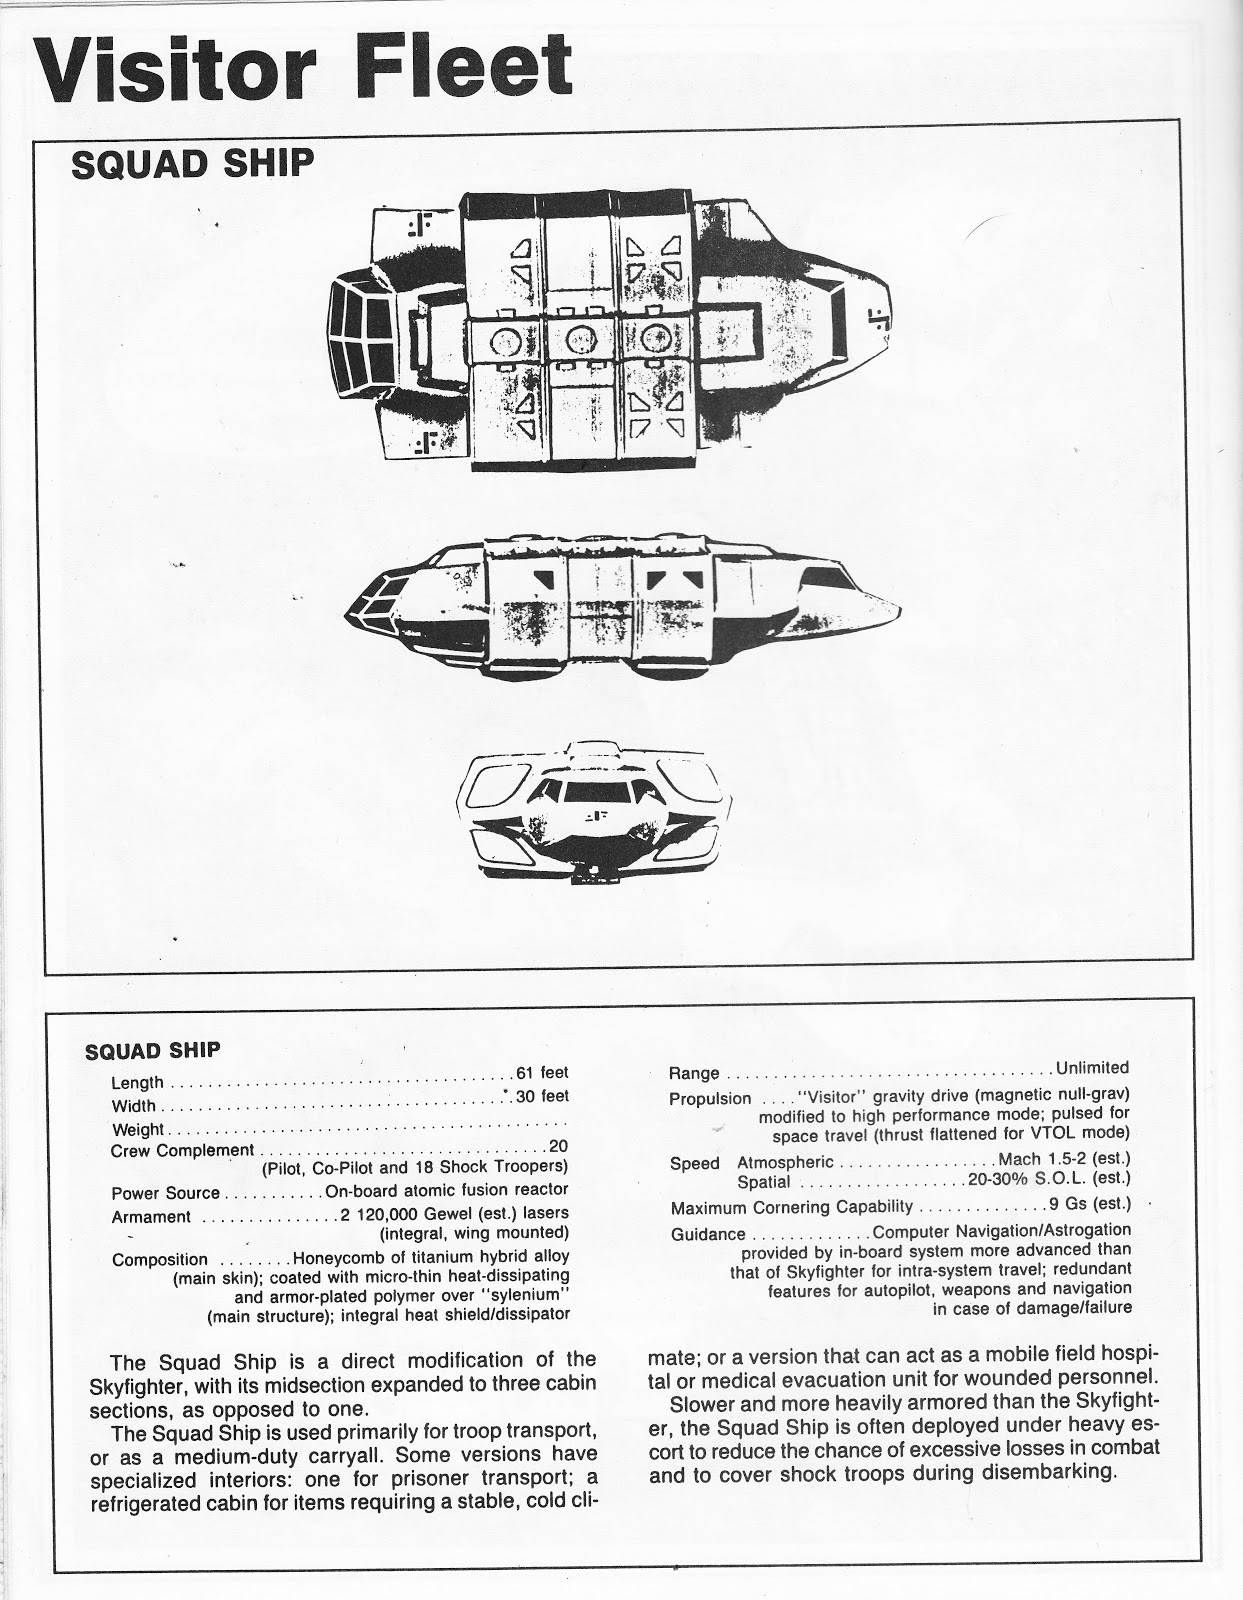 starlogged geek media again 1985 v the visitor technical rh starlogged blogspot com Army Technical Manuals technical information manual for sika carbodur